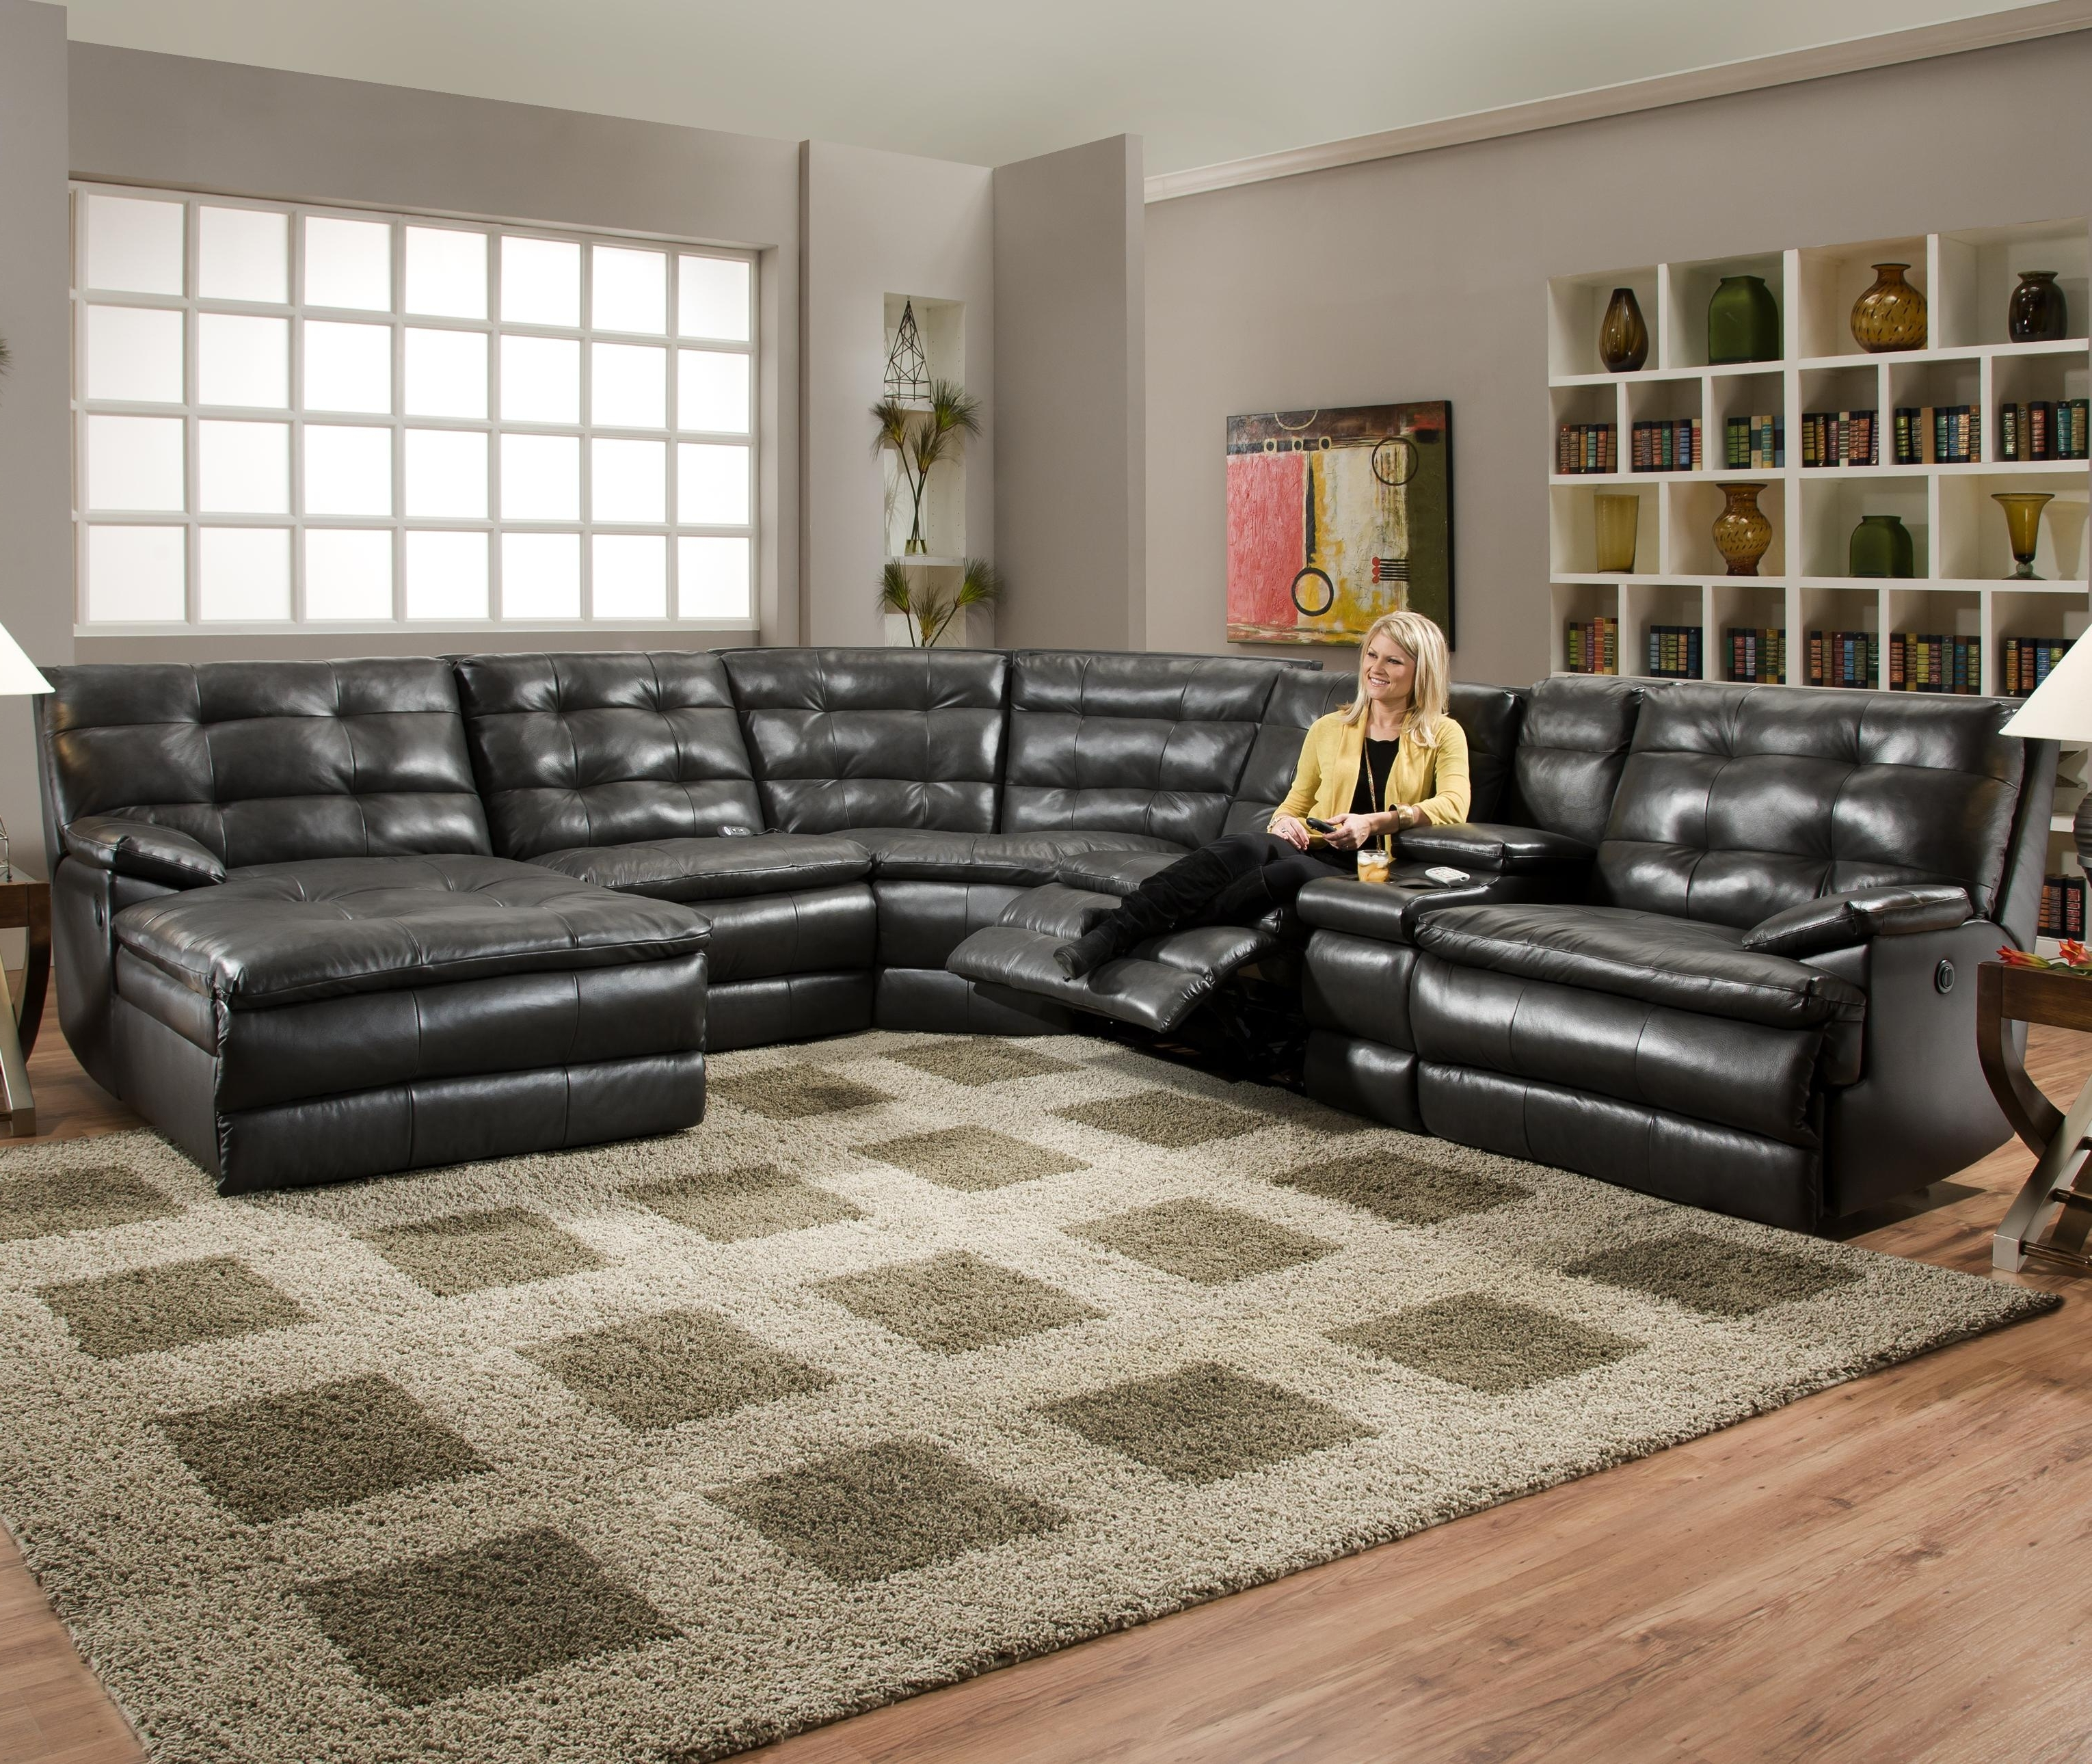 Reclining Sectional Sofas With Regard To Current Luxurious Tufted Leather Sectional Sofa In Classy Black Color With (View 12 of 20)